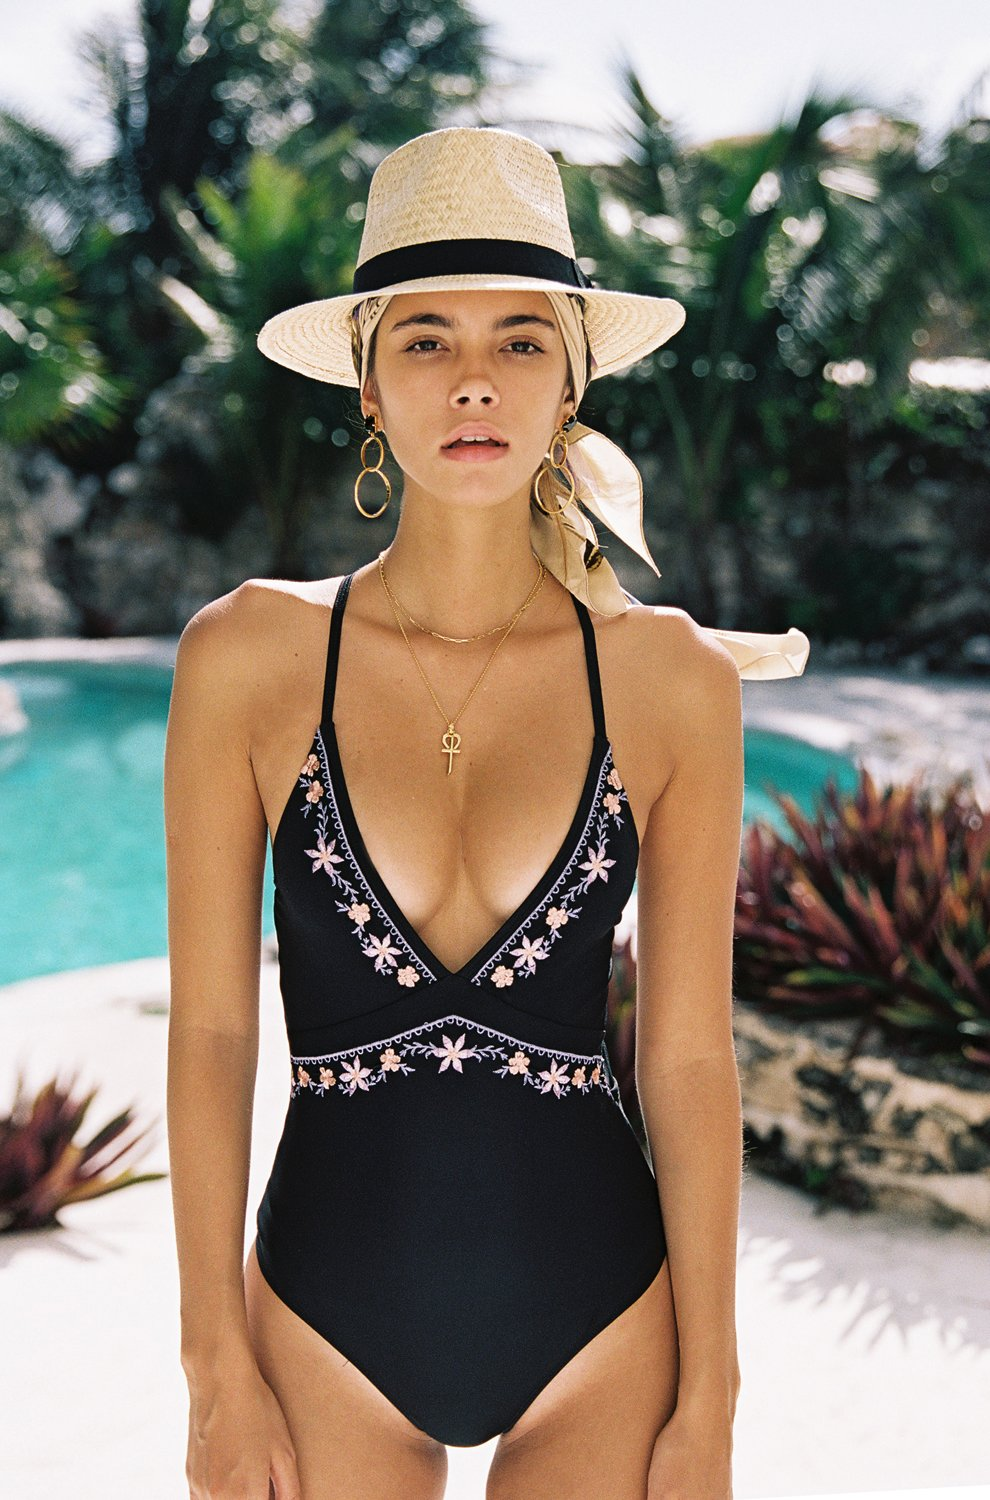 M&M 2019 New Hand Embroidery flower sexy One Piece Swimwear Women Deep V-neck Bathing Suit Beach Backless Swimsuit футболка мужская puma evoknit basic tee цвет серый 59063203 размер m 46 48